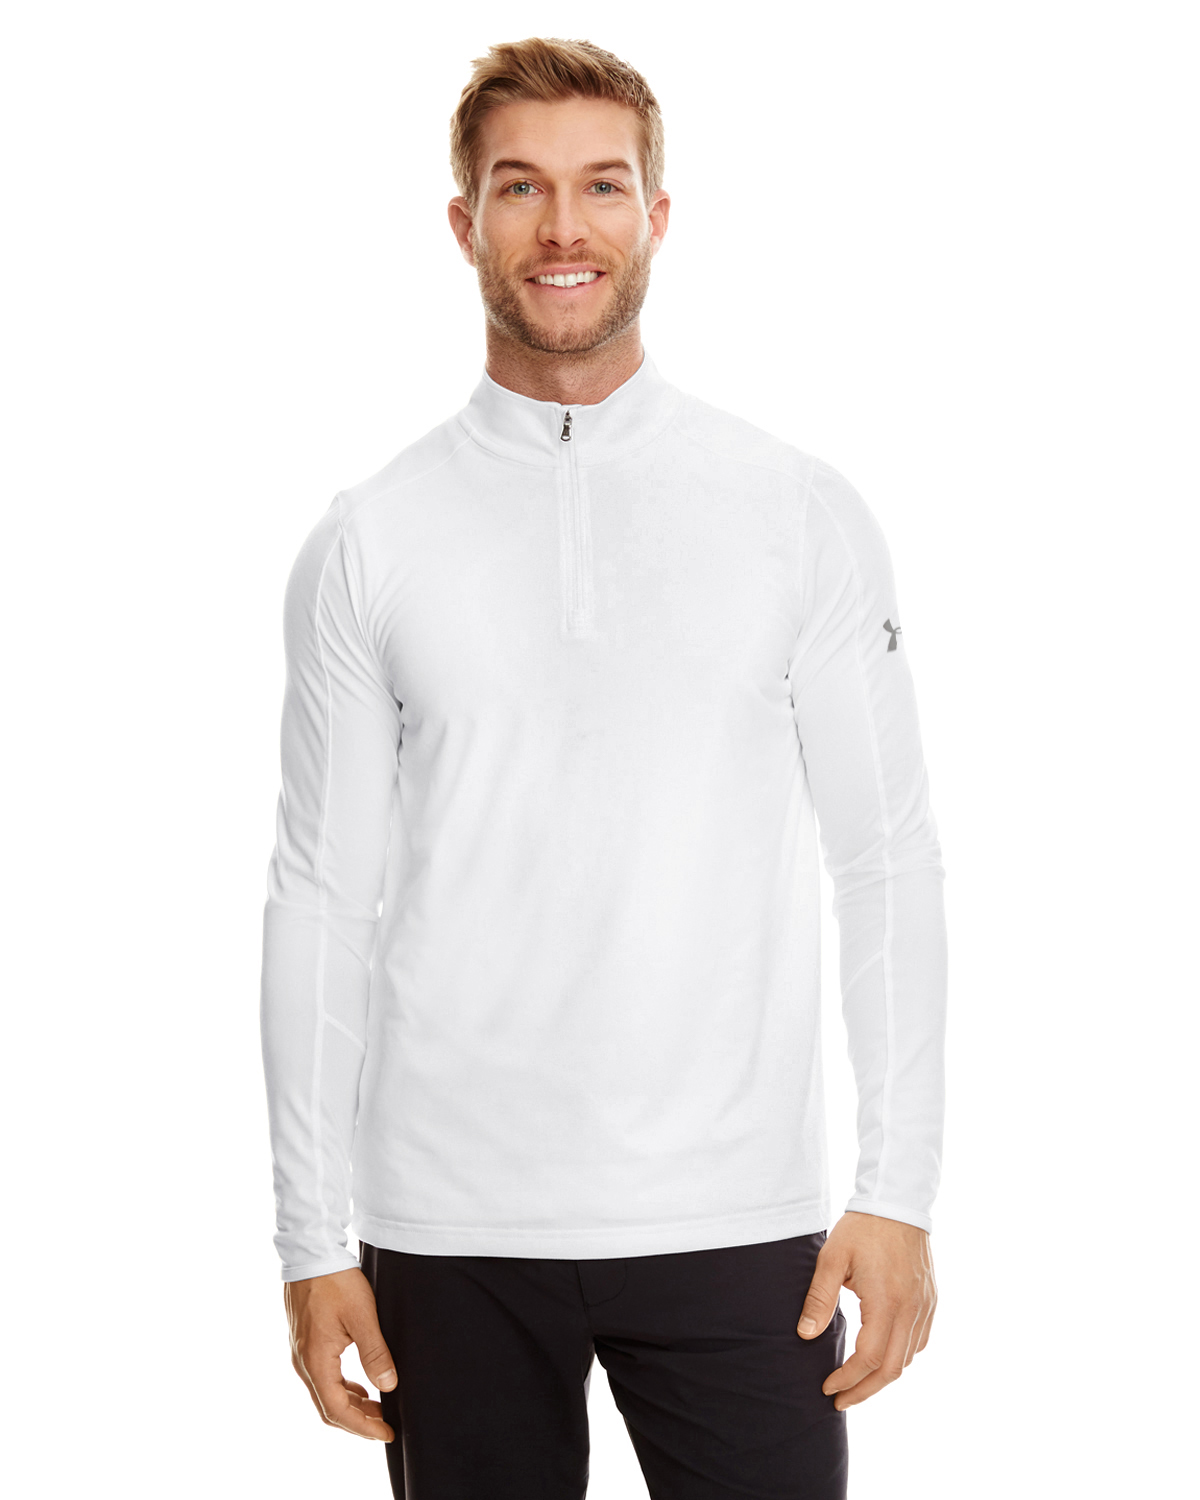 Under Armour 1300131 - Men's UA Tech™ Quarter-Zip